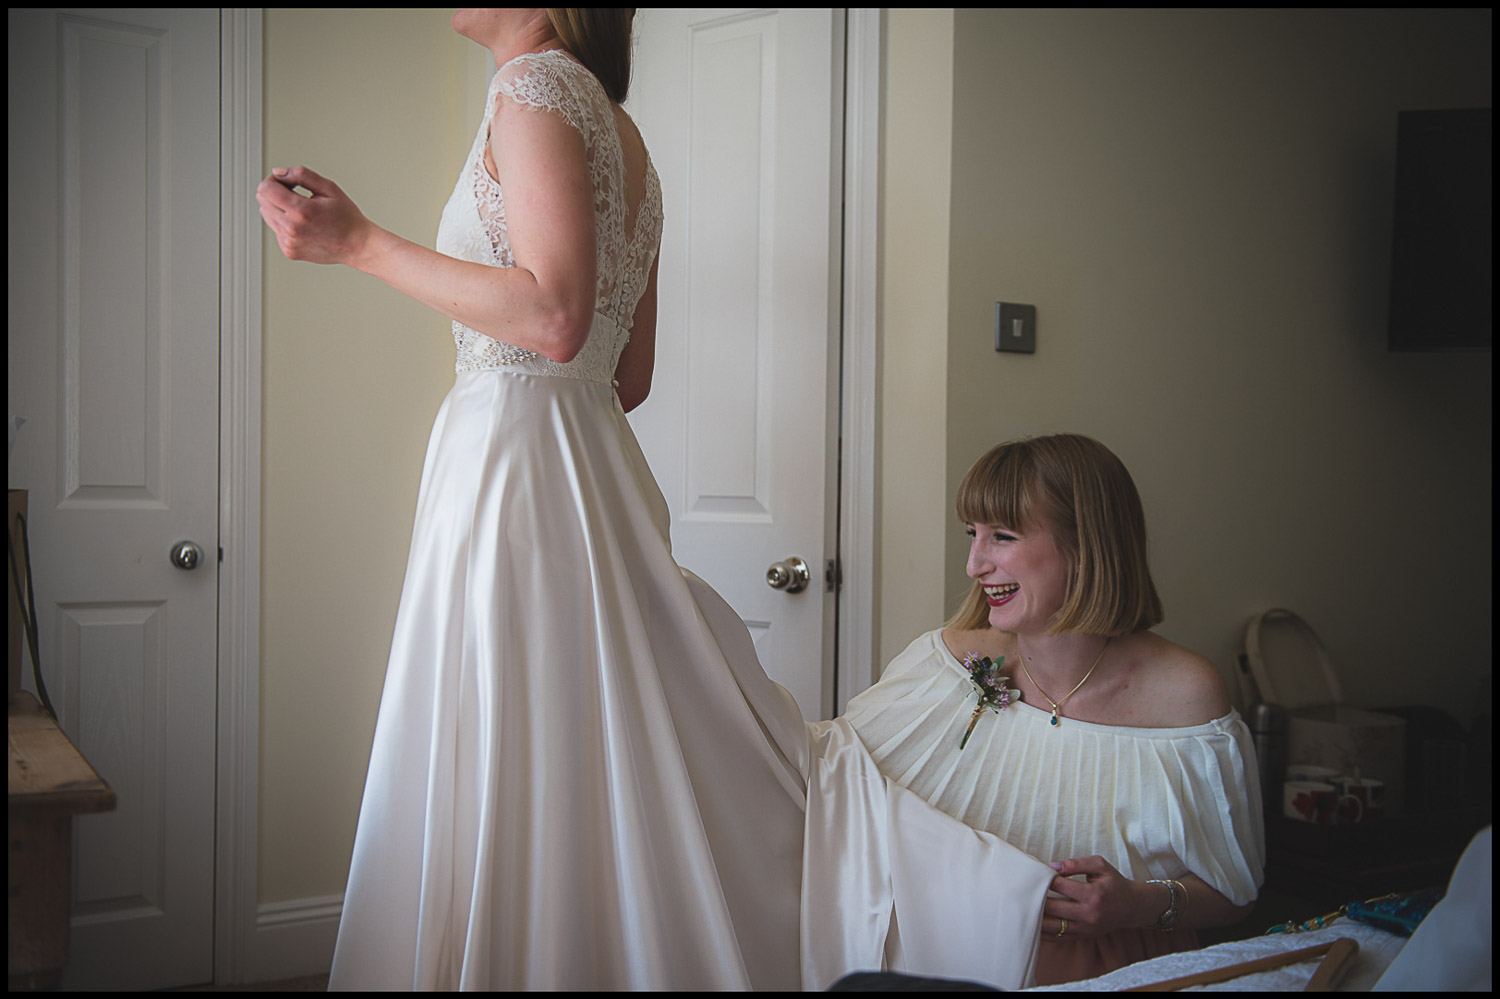 uk-documentary-wedding-photographer-1.jpg